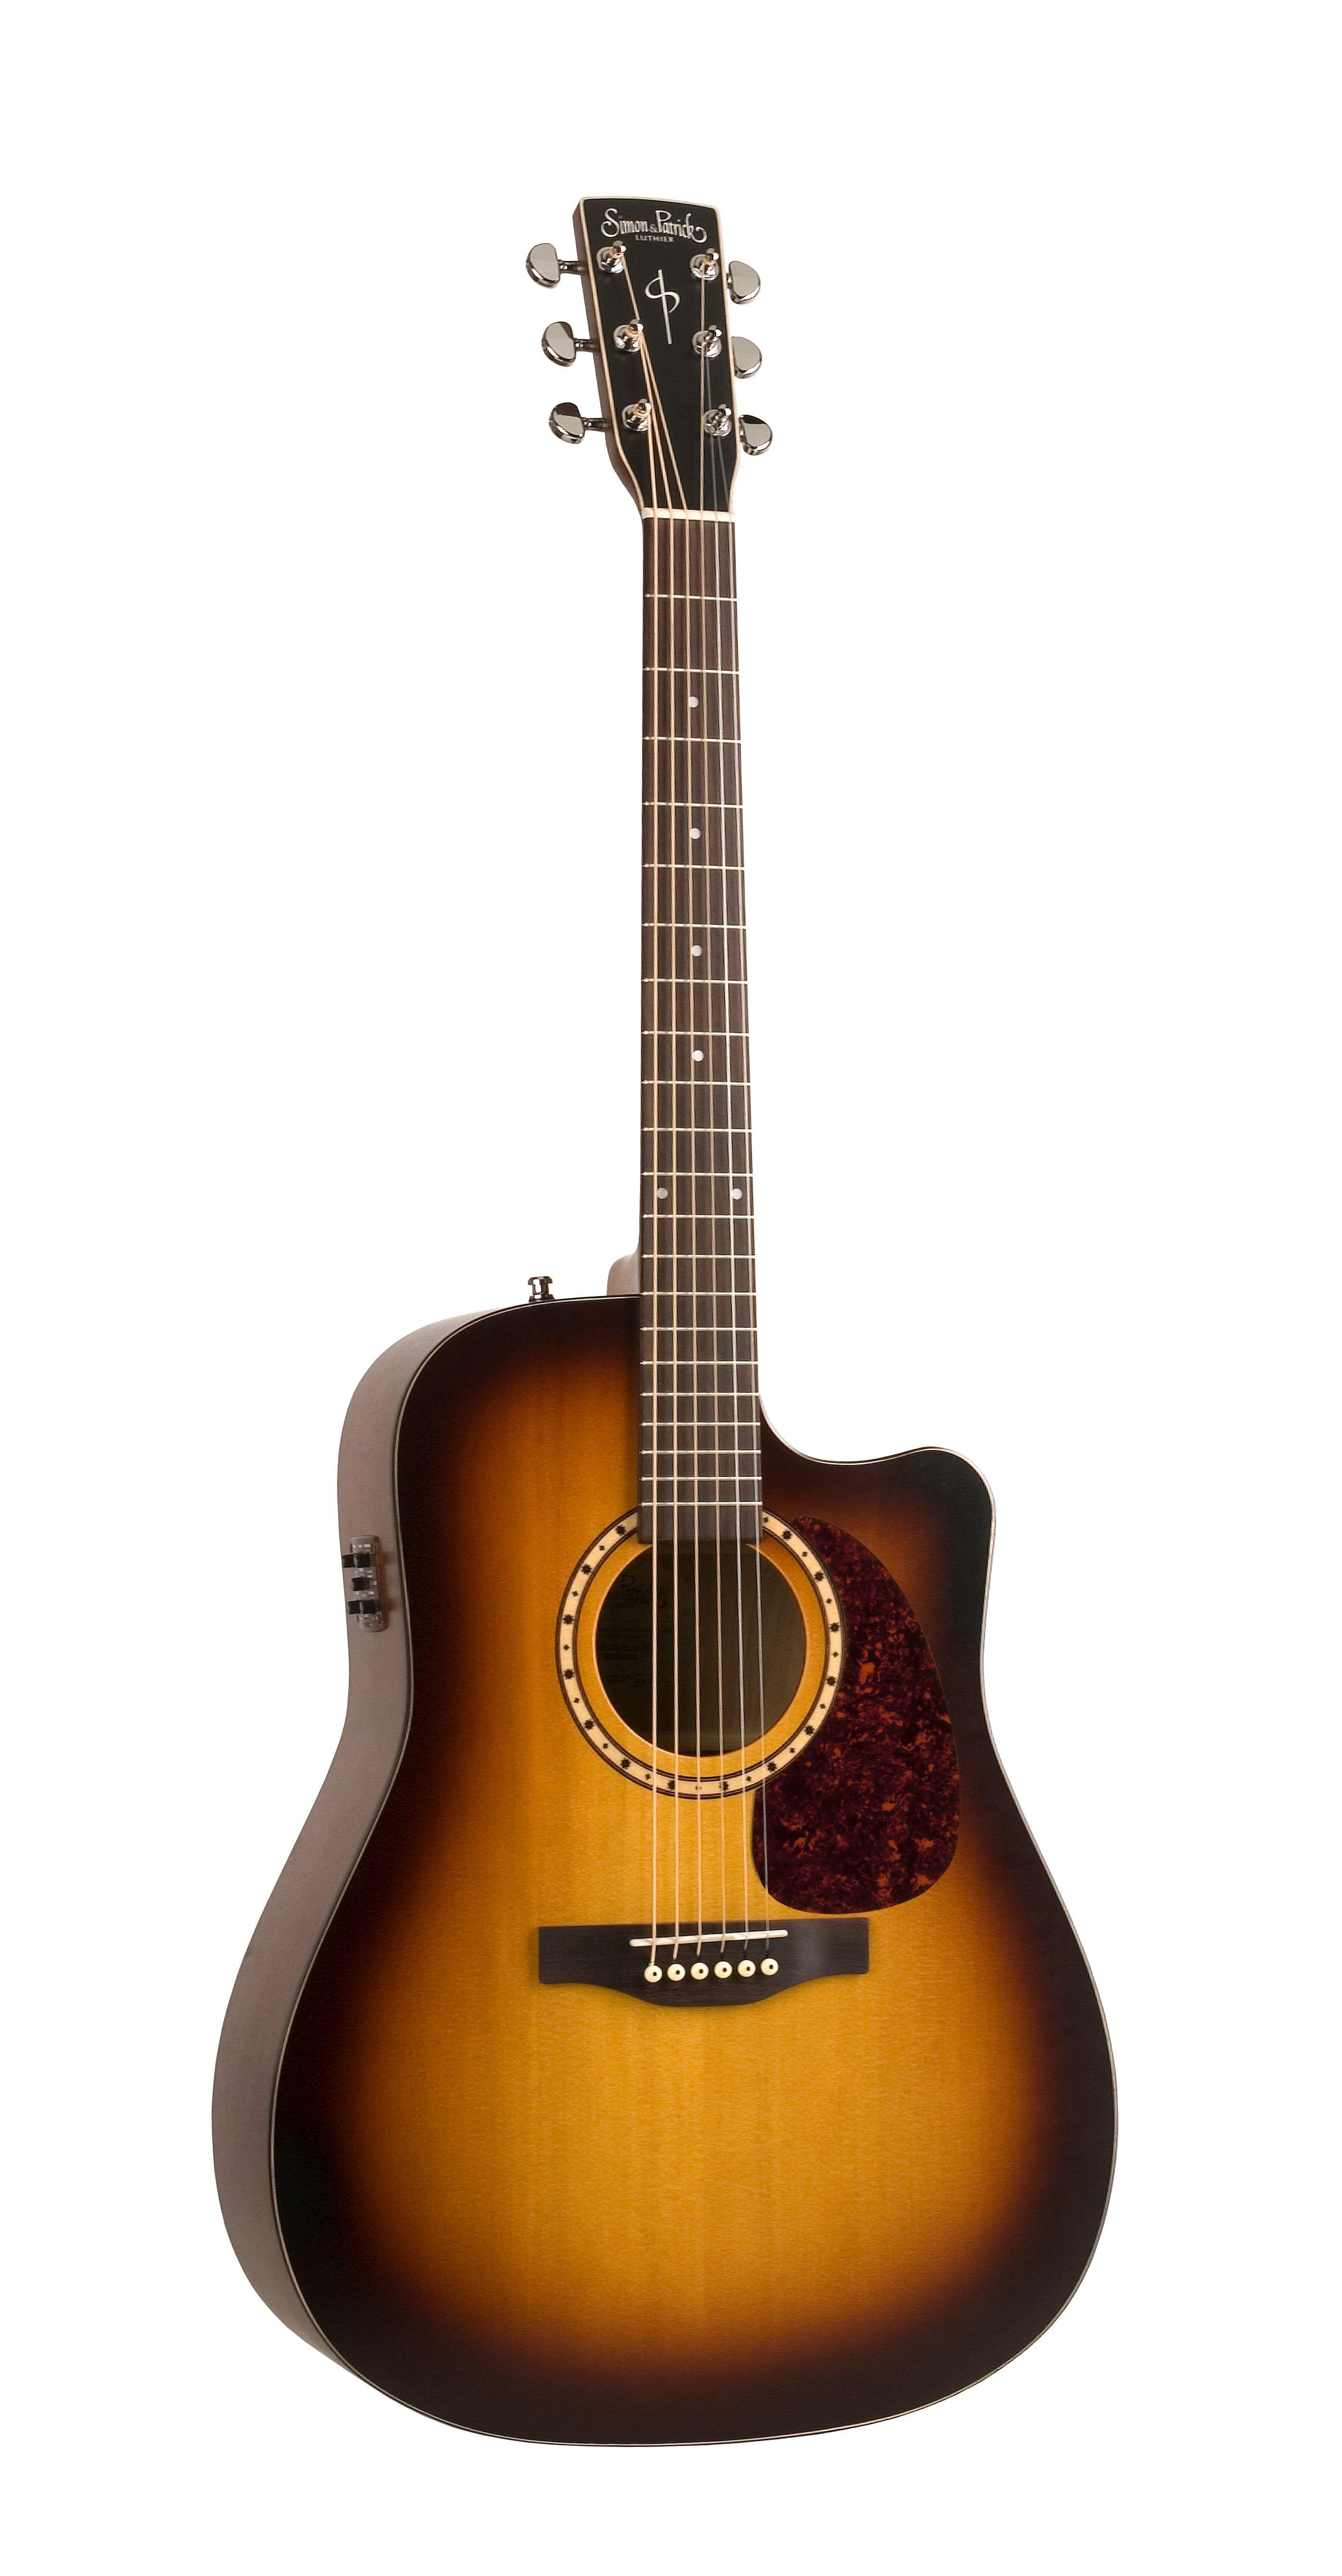 Simon & Patrick 31580 Songsmith Varnish Burst Cutaway Dreadnought Acoustic Electric Guitar w/ B-Band A3T